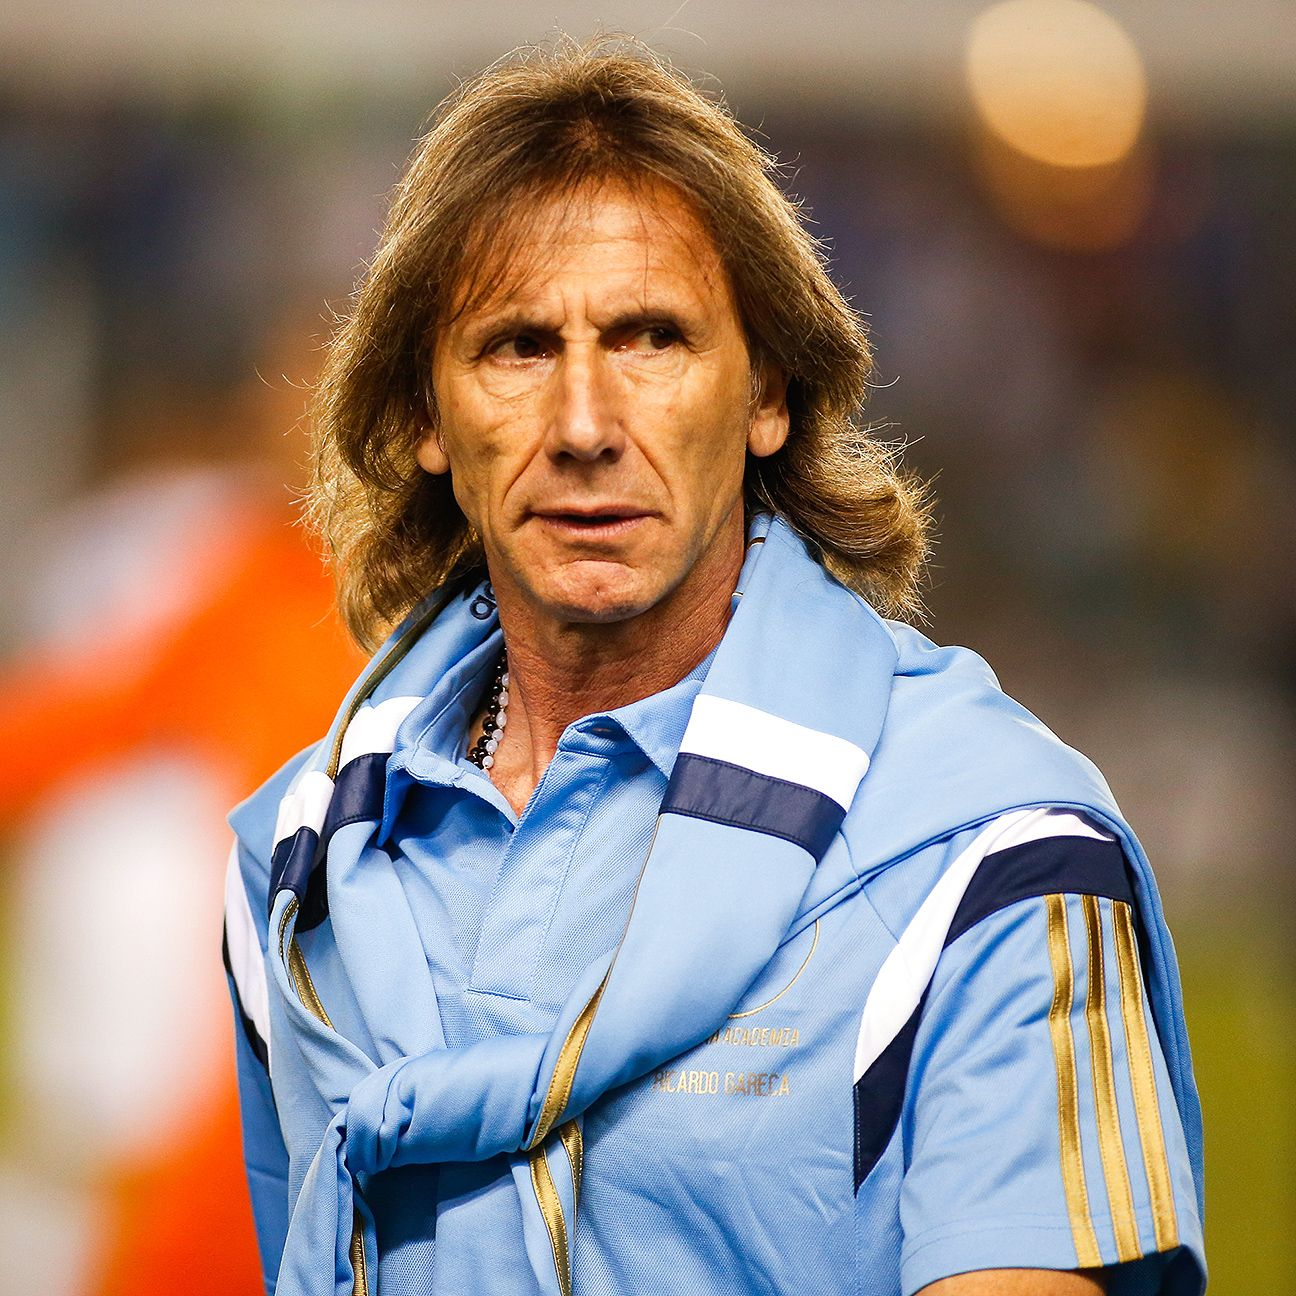 Argentine Ricardo Gareca is charged with leading Peru to their first World Cup since 1982.